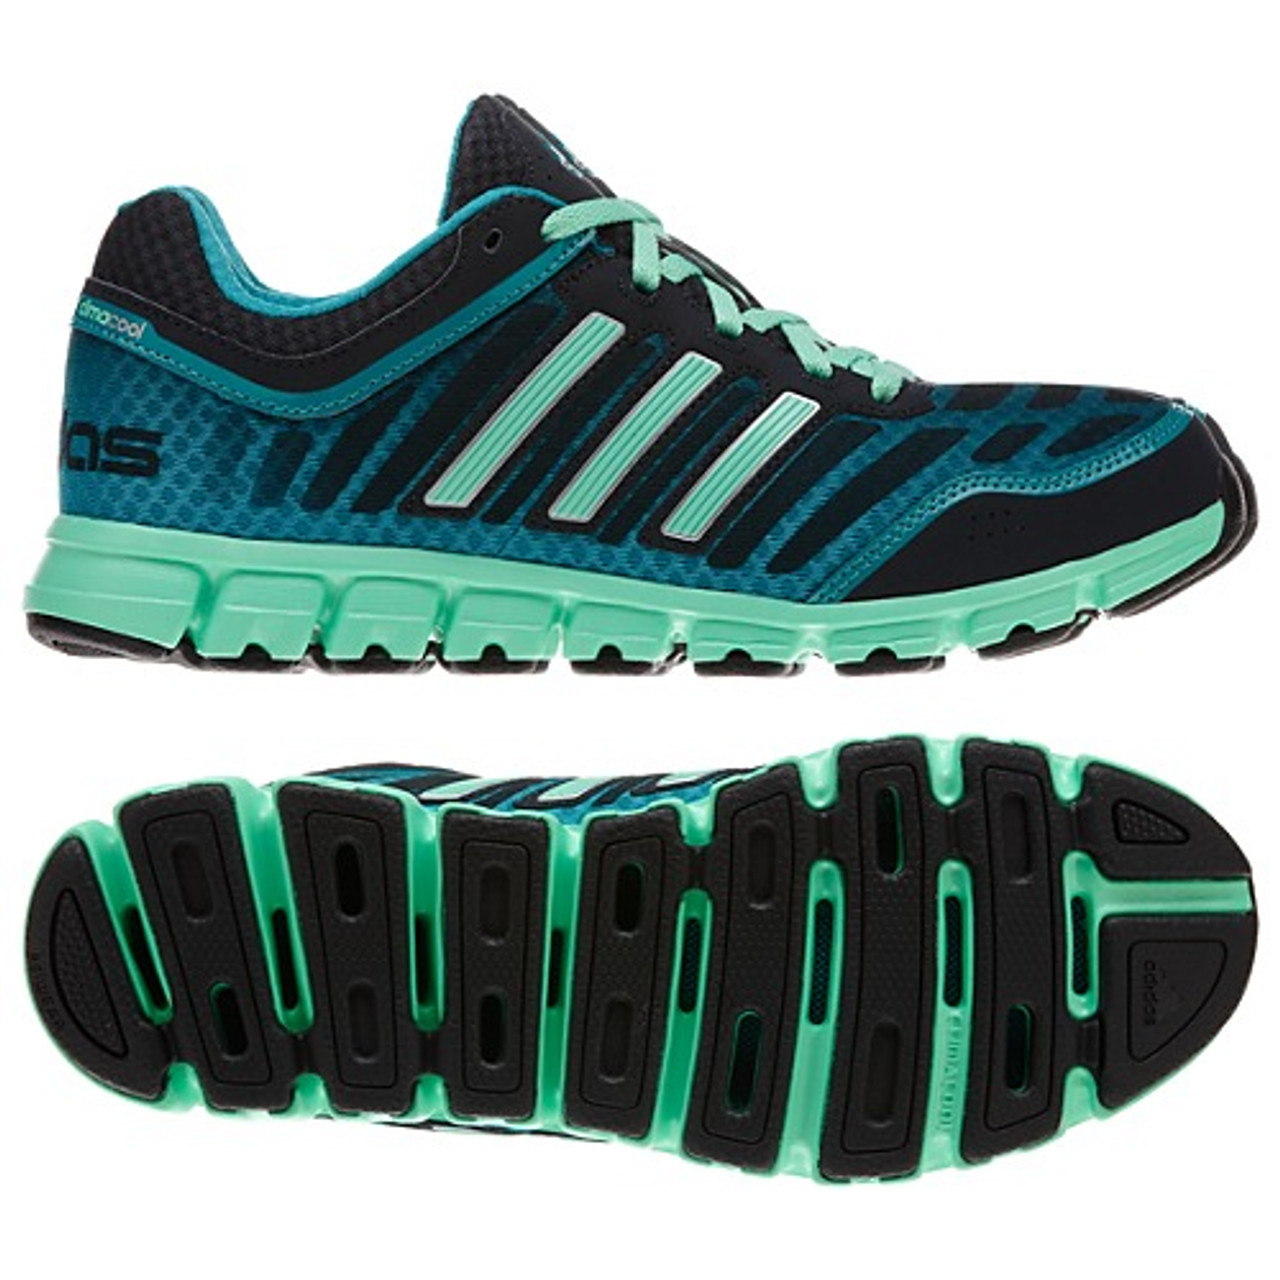 brand new b987c 800cb Adidas ClimaCool Aerate 2 Black Womens Running Shoes